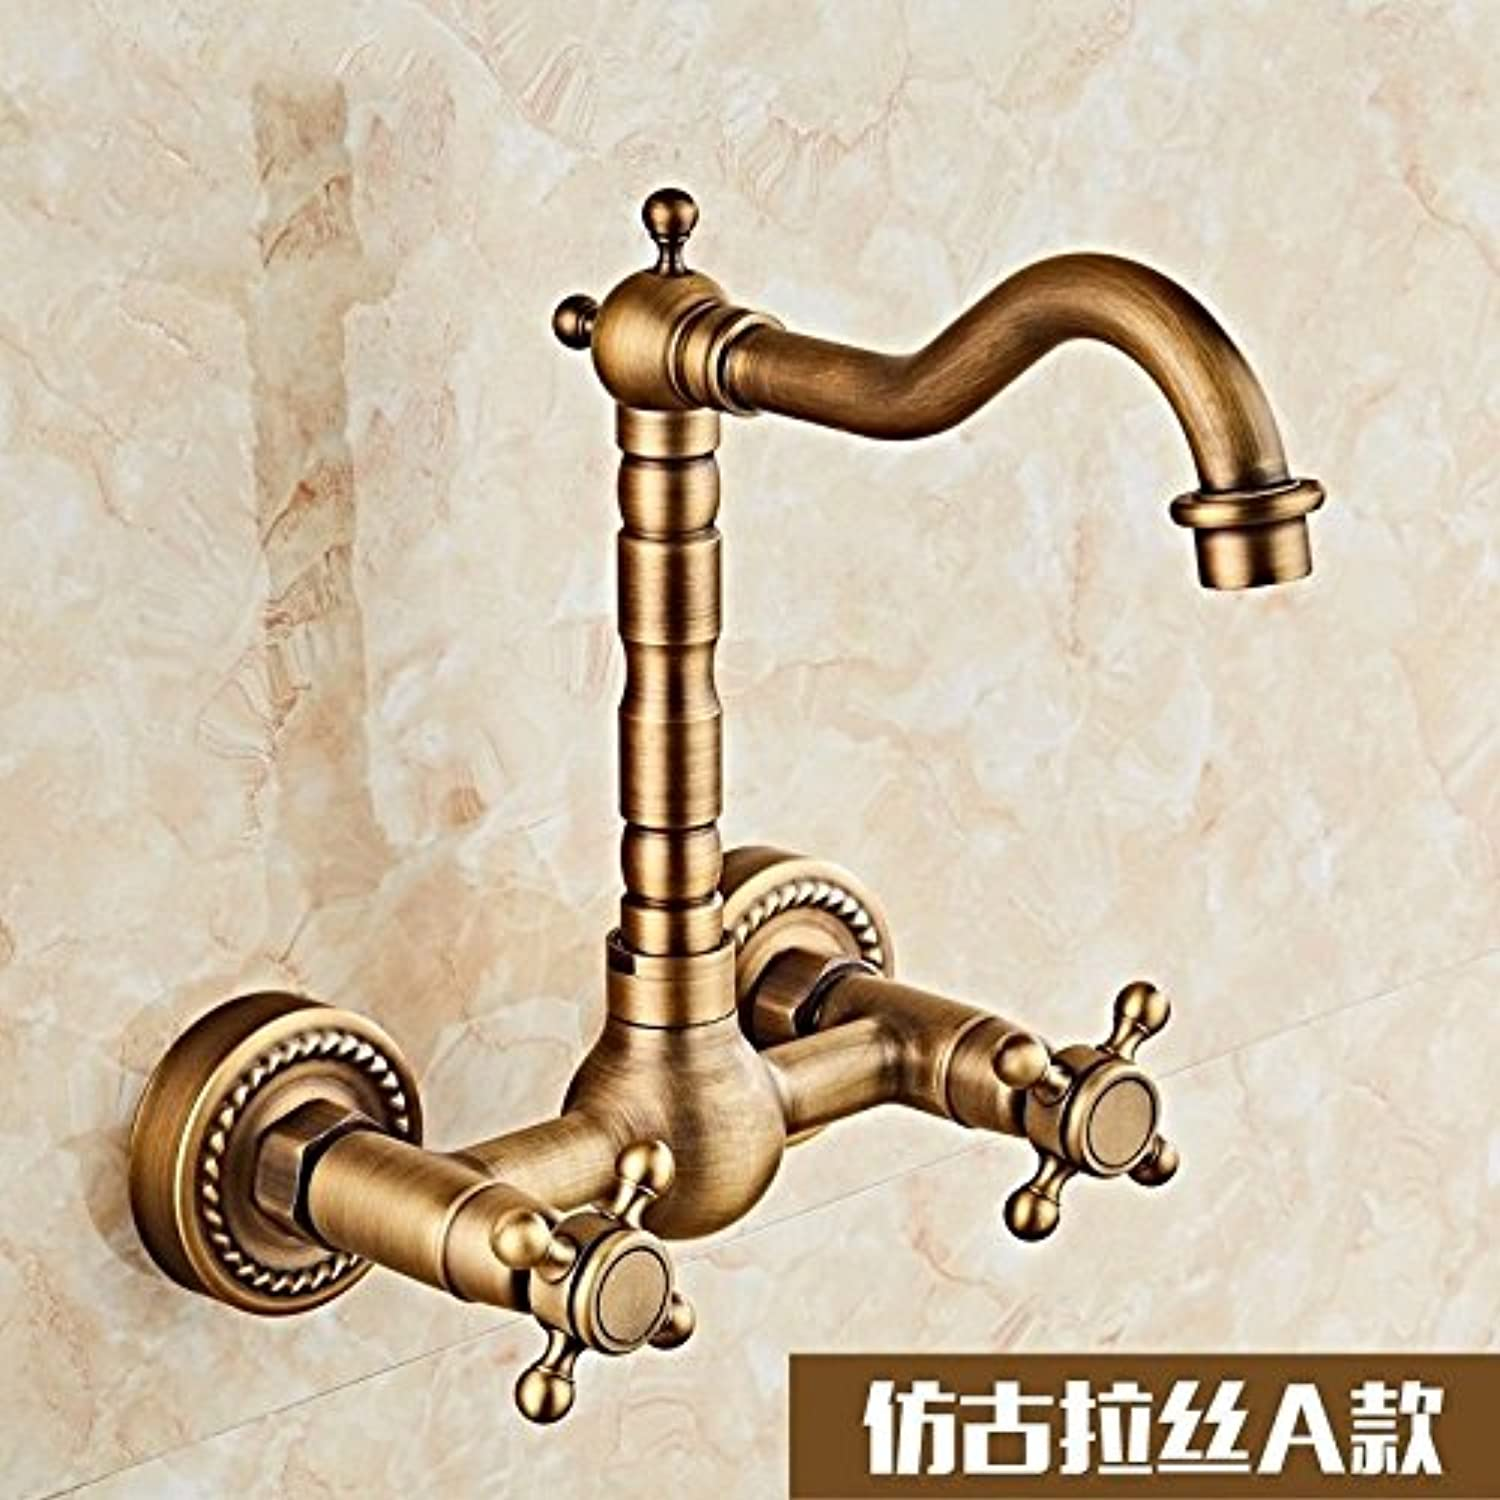 Gyps Faucet Basin Mixer Tap Waterfall Faucet Antique Bathroom Mixer Bar Mixer Shower Set Tap antique bathroom faucet Wall mounted faucets double-double-hole redating hot and cold High of 24CMB,Modern